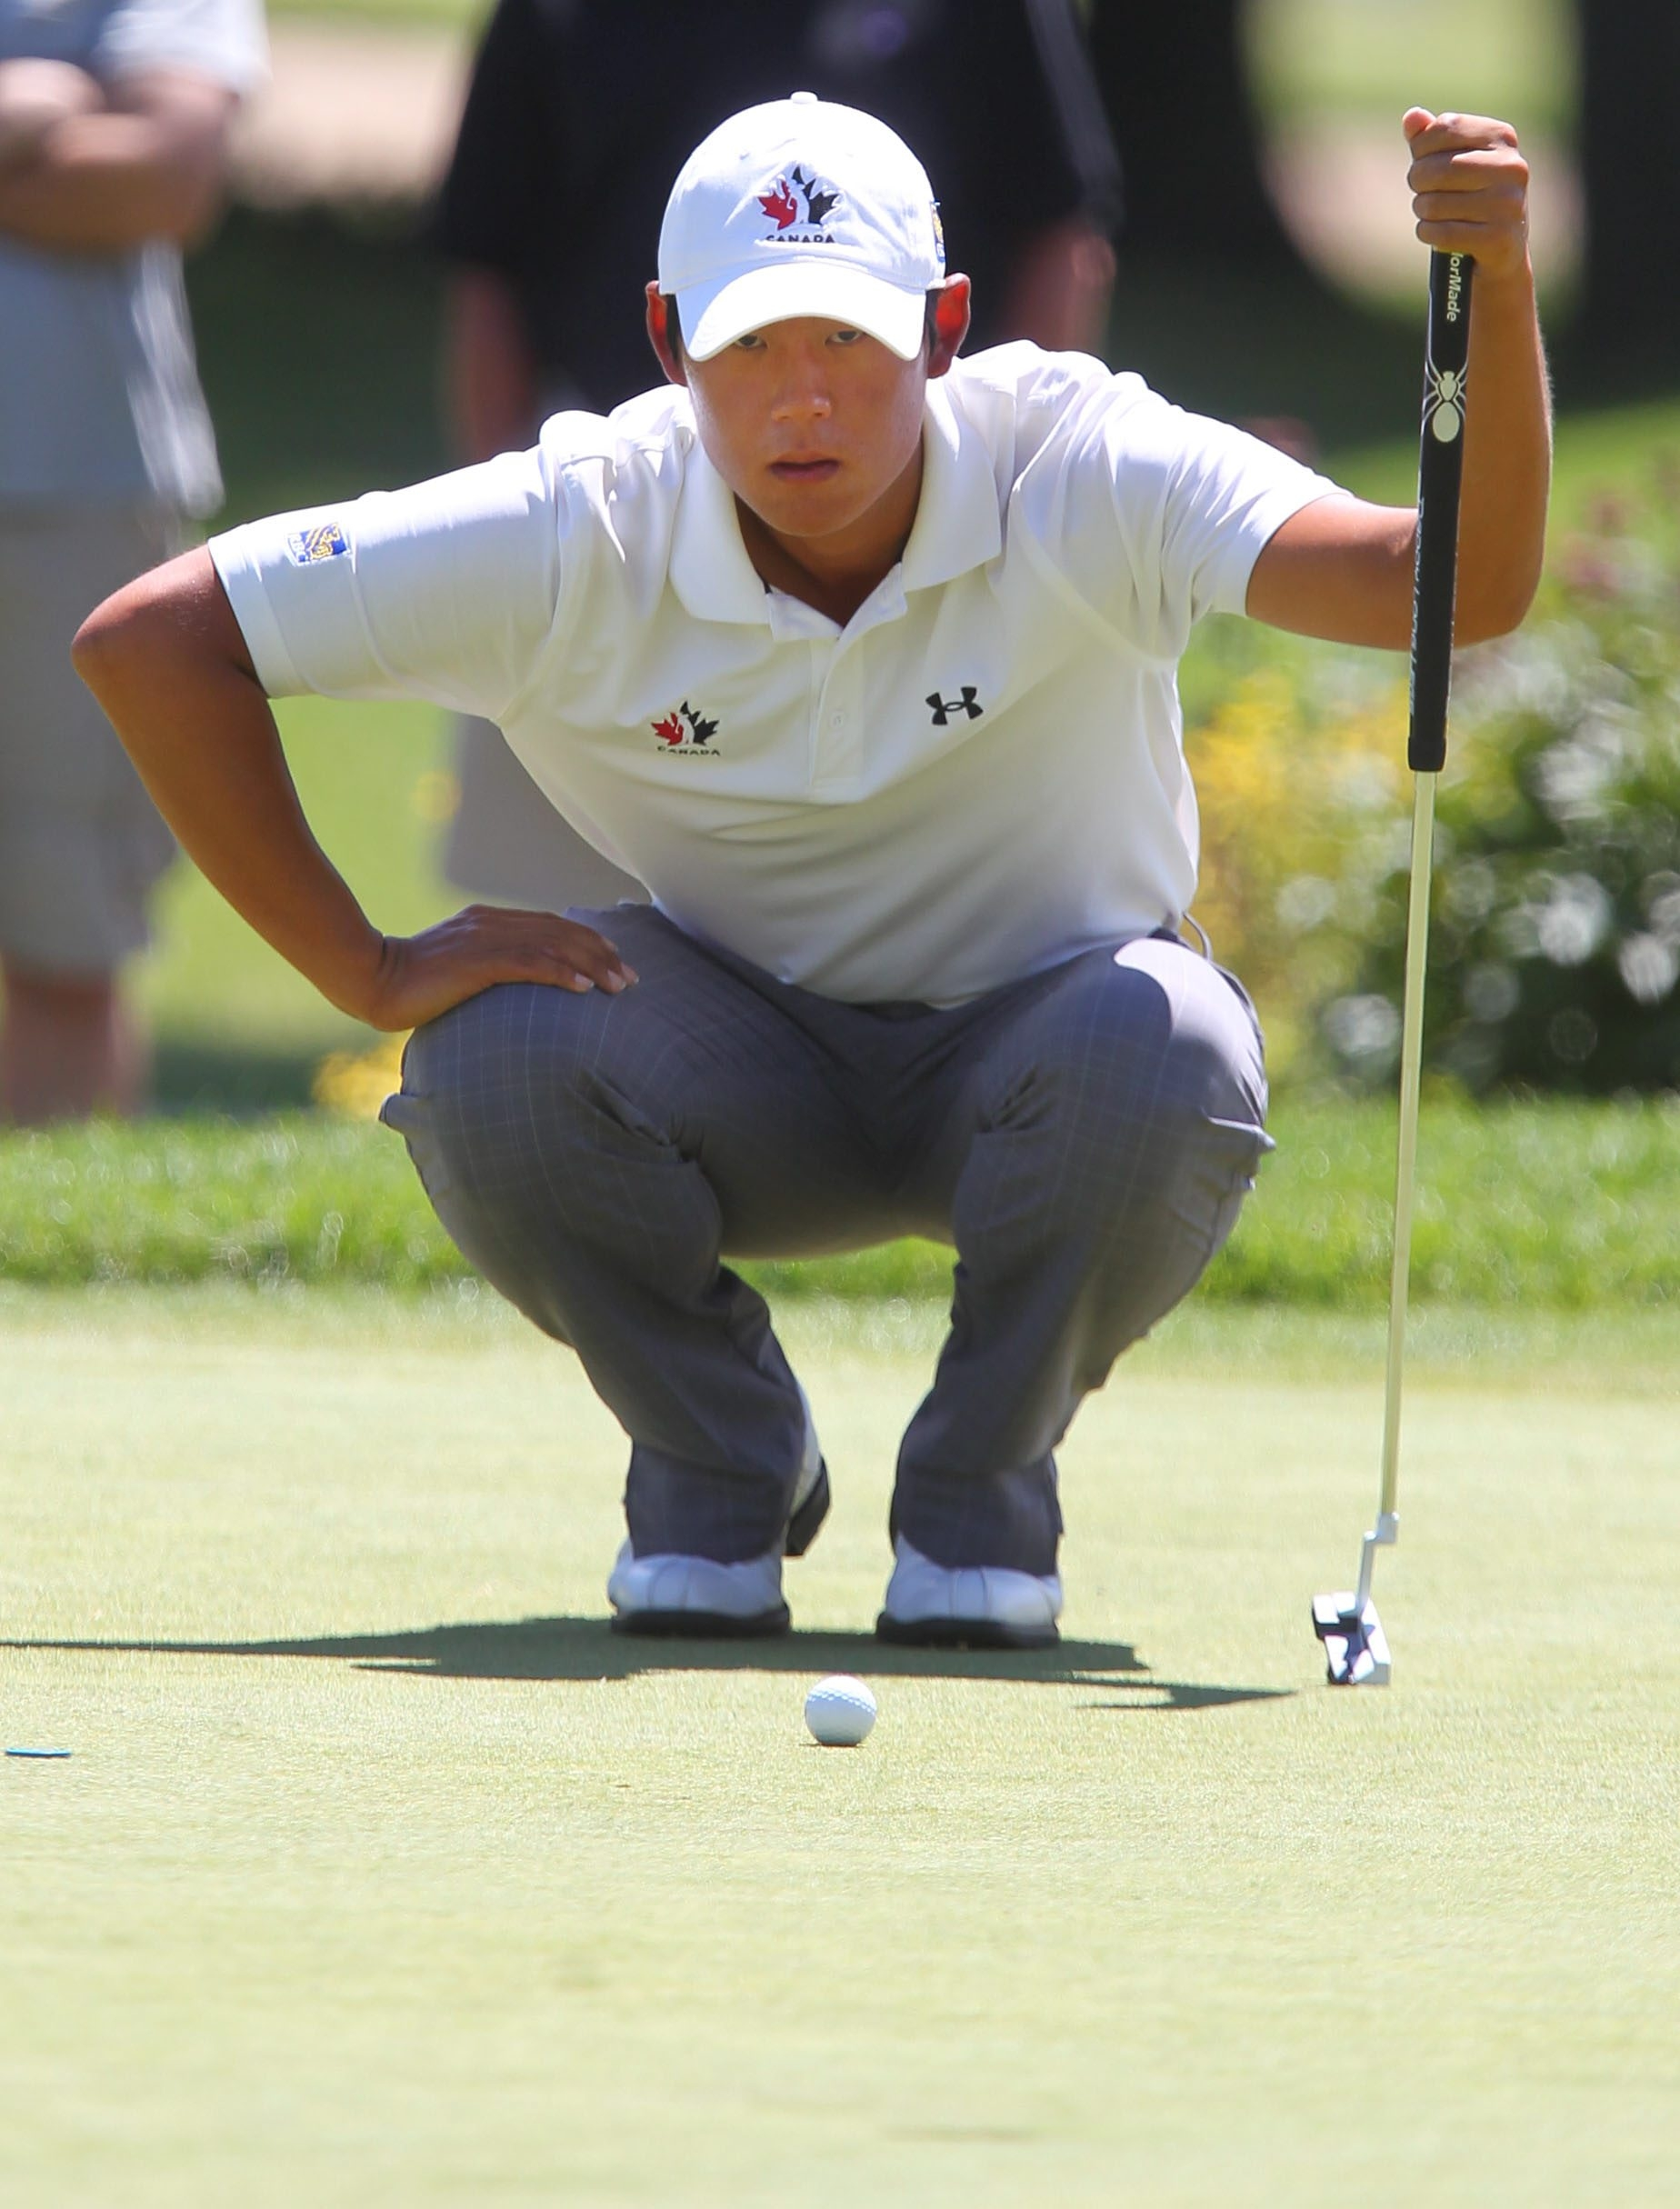 First-round leader Justin Shin will be in the final group, trailing the leader by just one stroke.